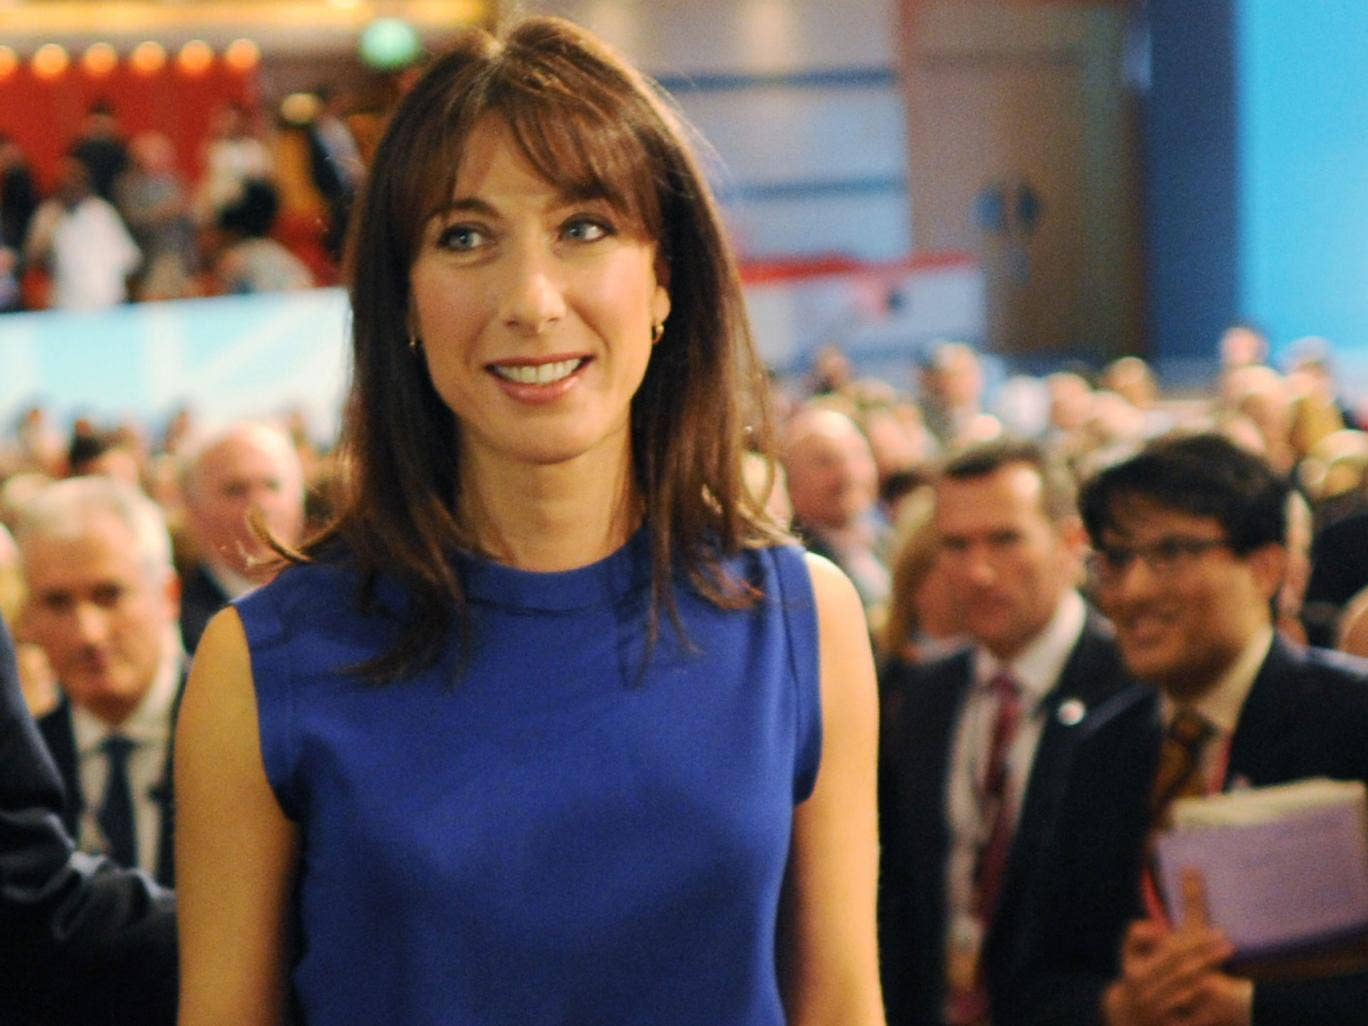 Samantha Cameron has been criticised for urging her husband to intervene in the Syrian civil war